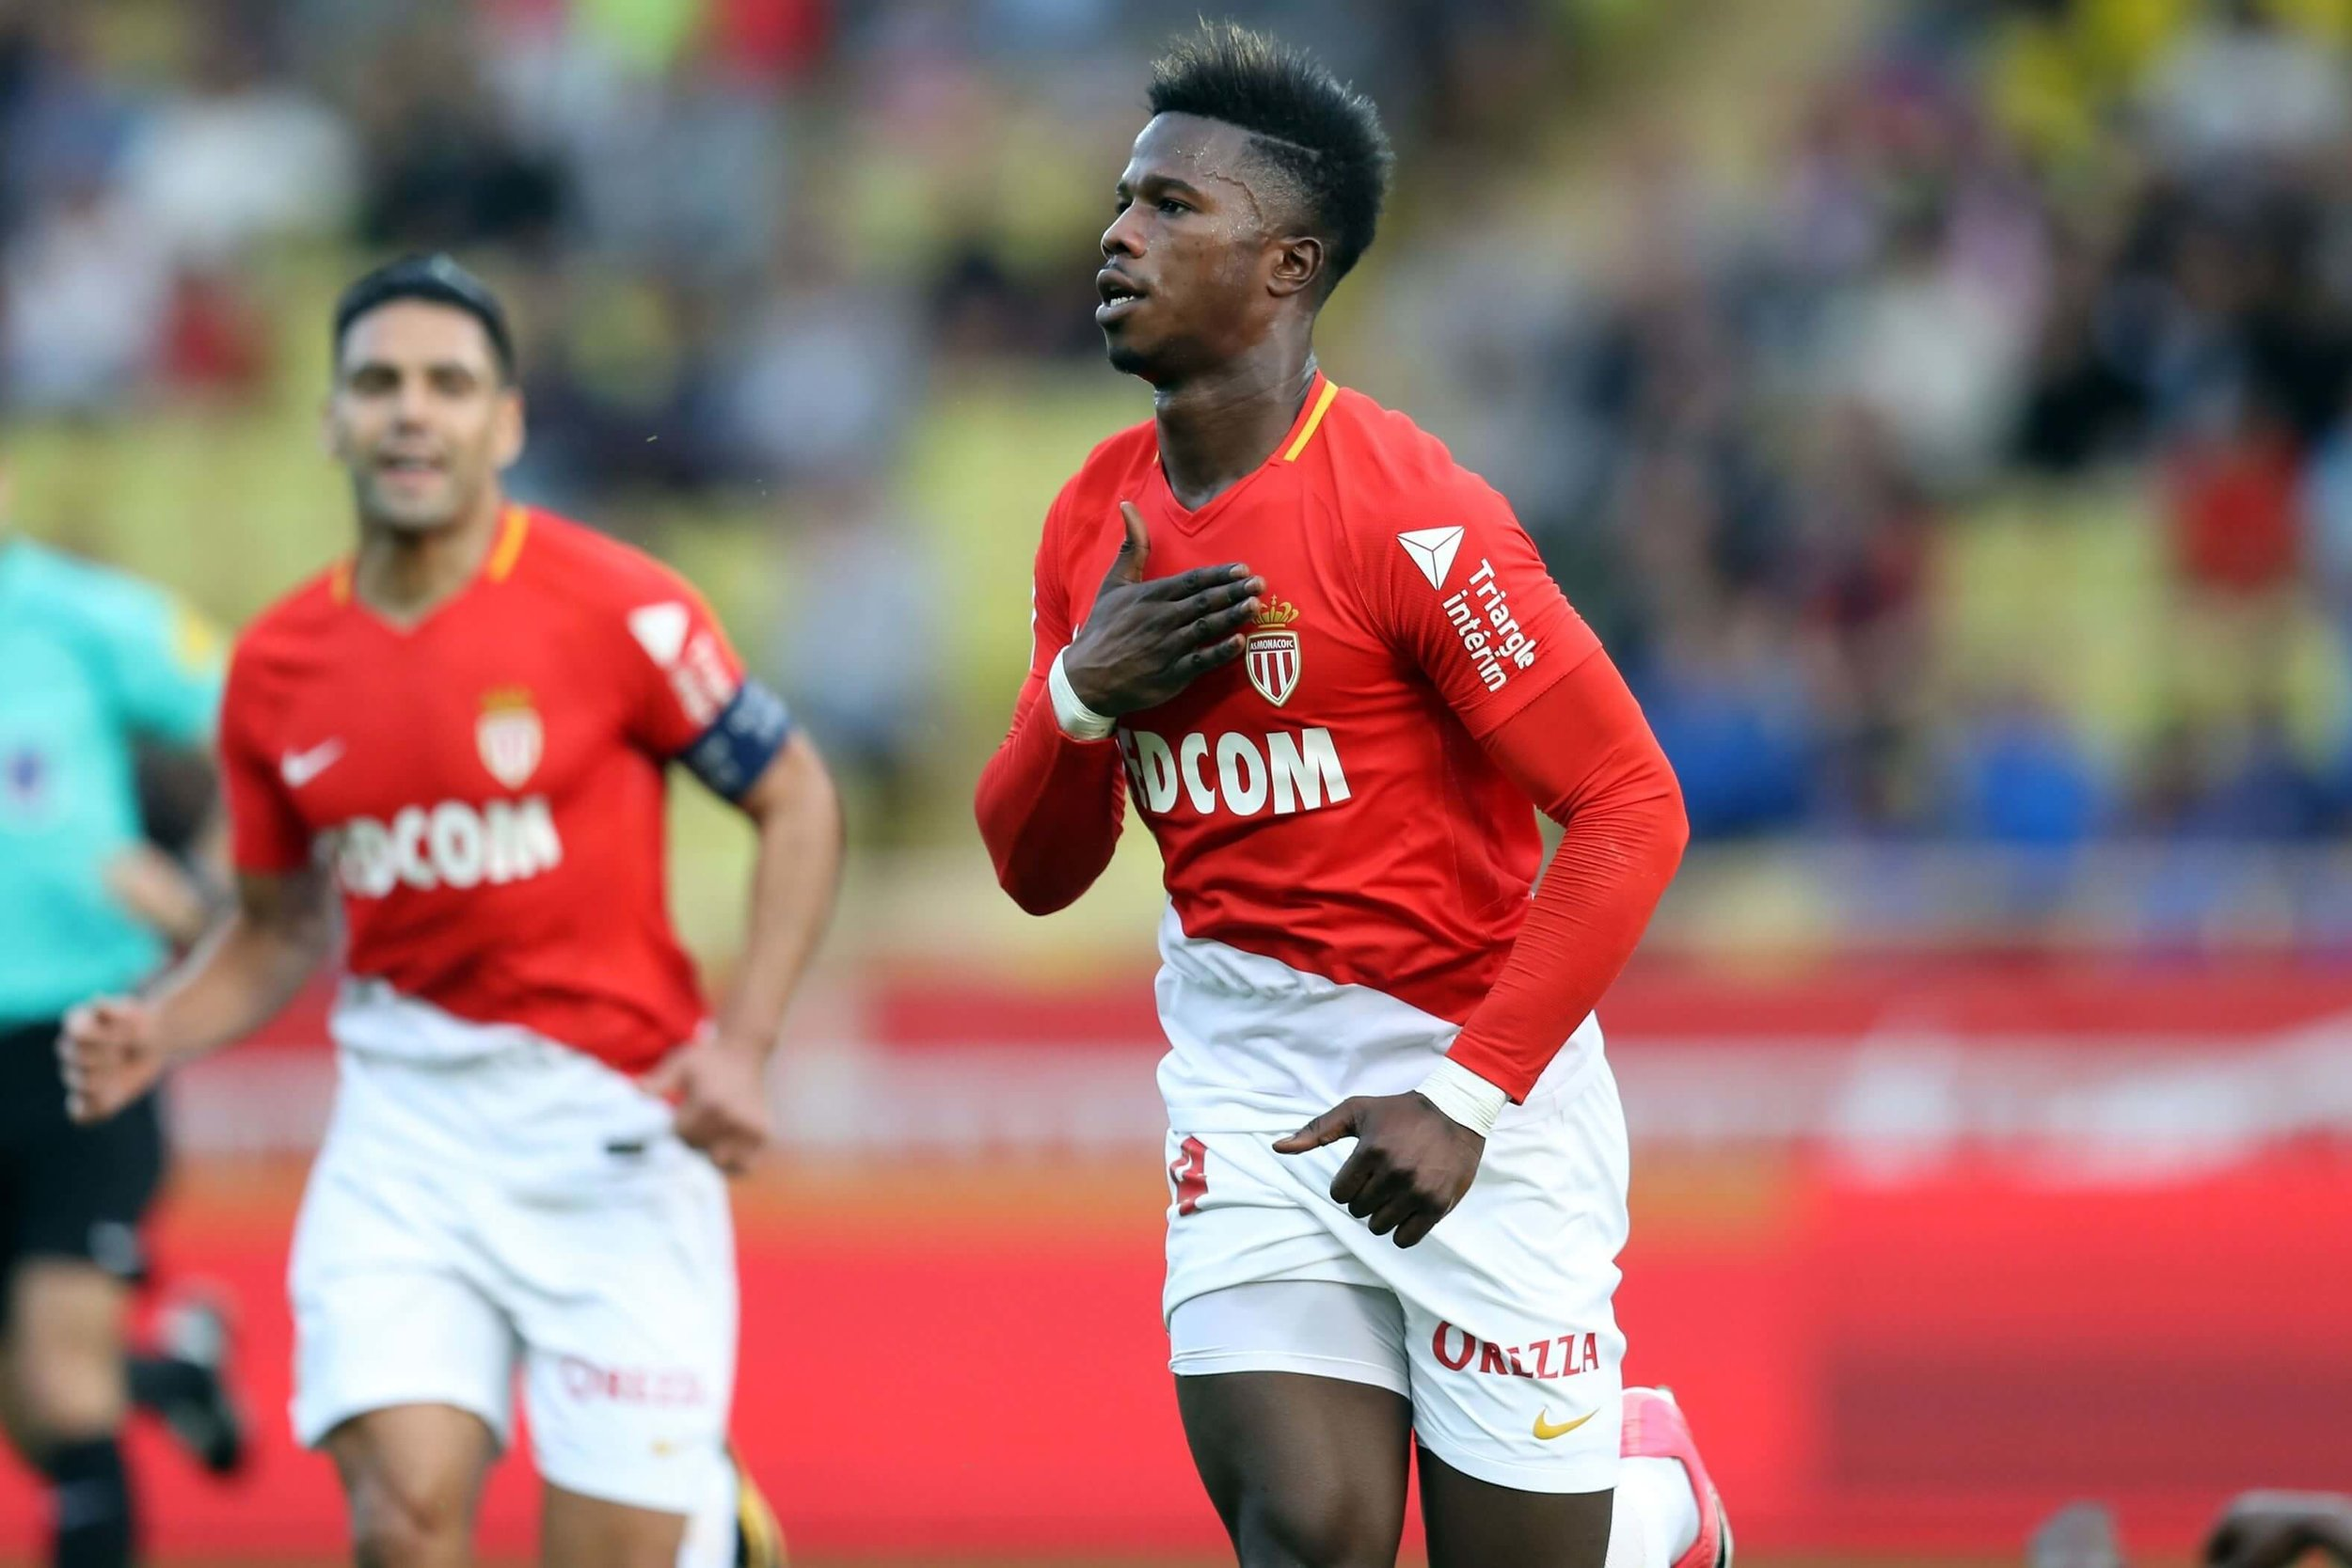 Keita Balde is a talented attacker and has a bright future for his club AS Monaco FC and the Senegal National Team.